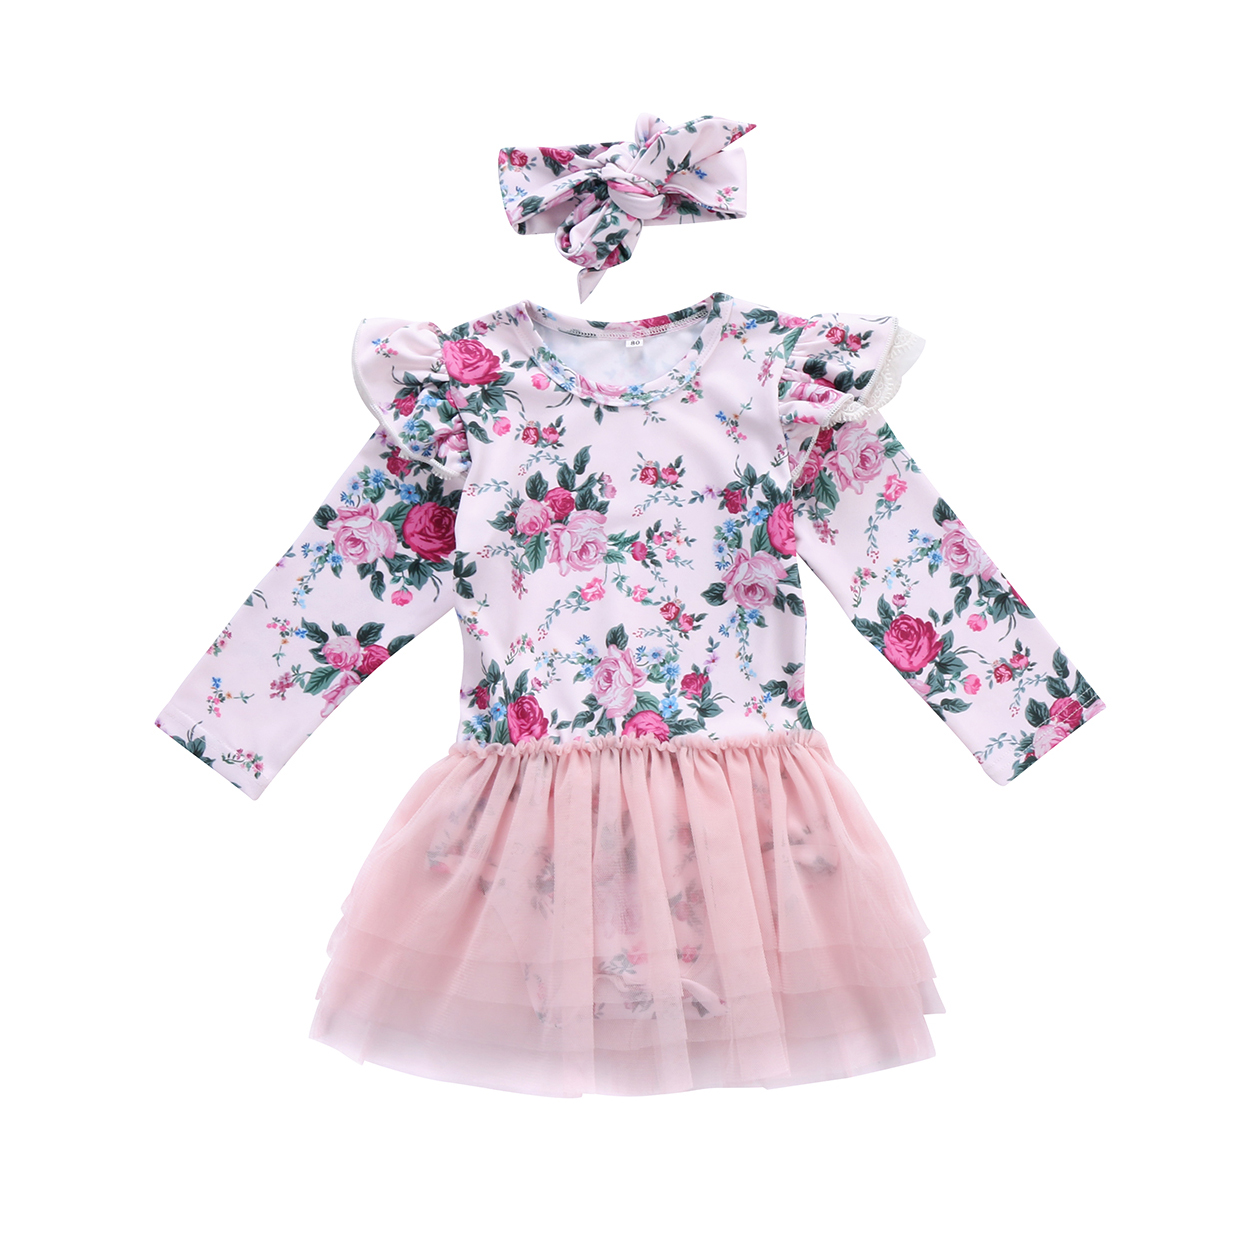 2Pcs Adorable Toddle Infant Baby Girl Casual Fly Sleeve Floral Romper Voile Ball Gown Bow Headband Outfit 0-24M